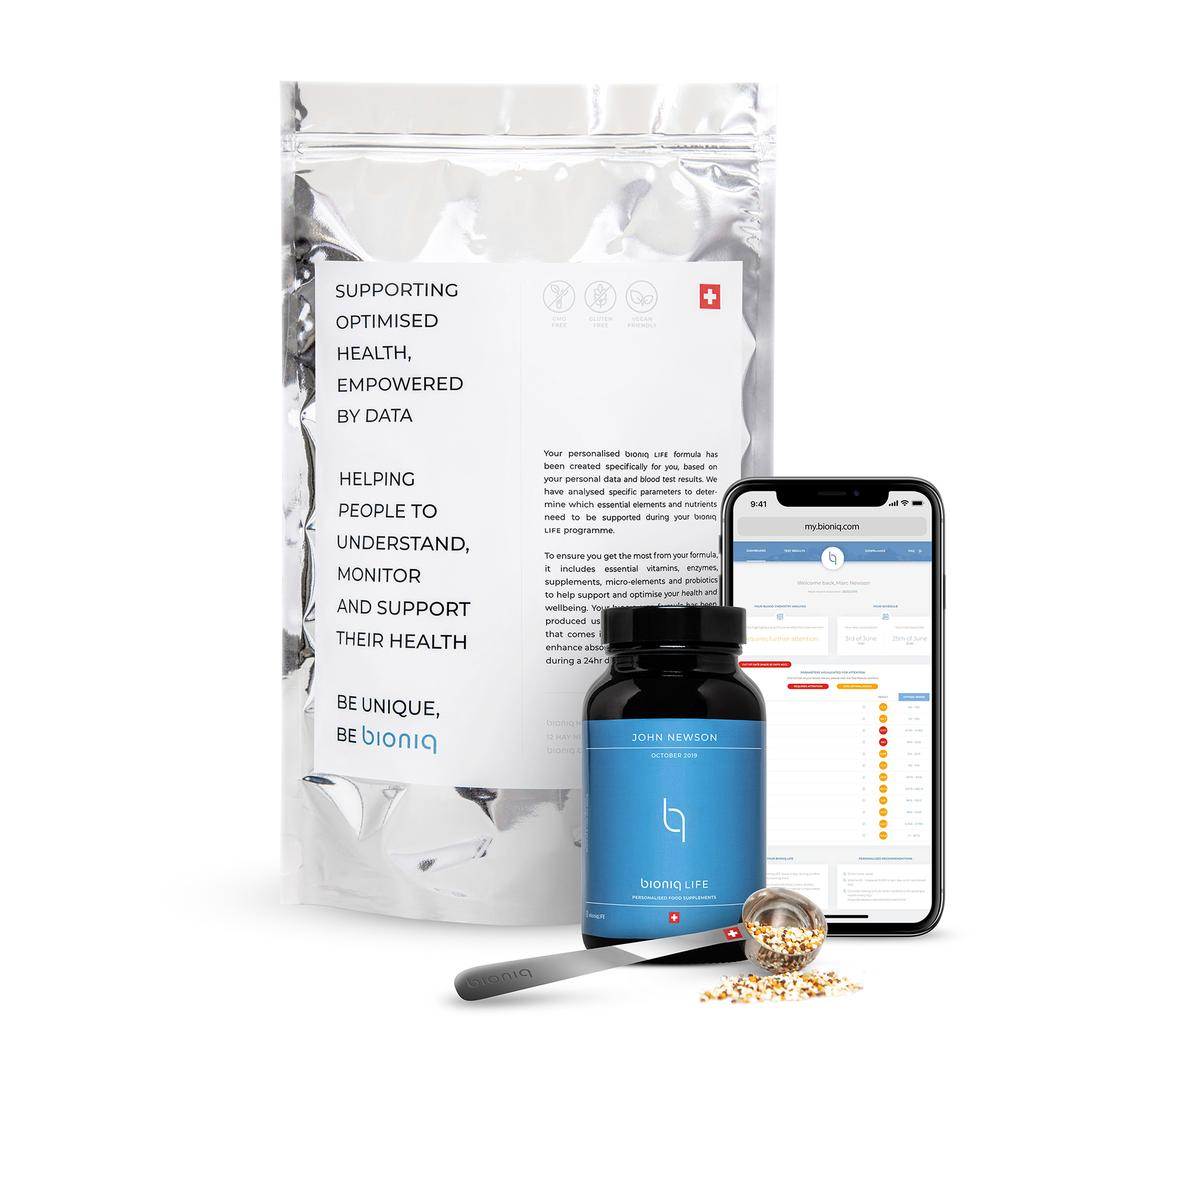 Bioniq uses in-depth blood, microbiome and genetic tests to track health and produce tailor-made supplements.